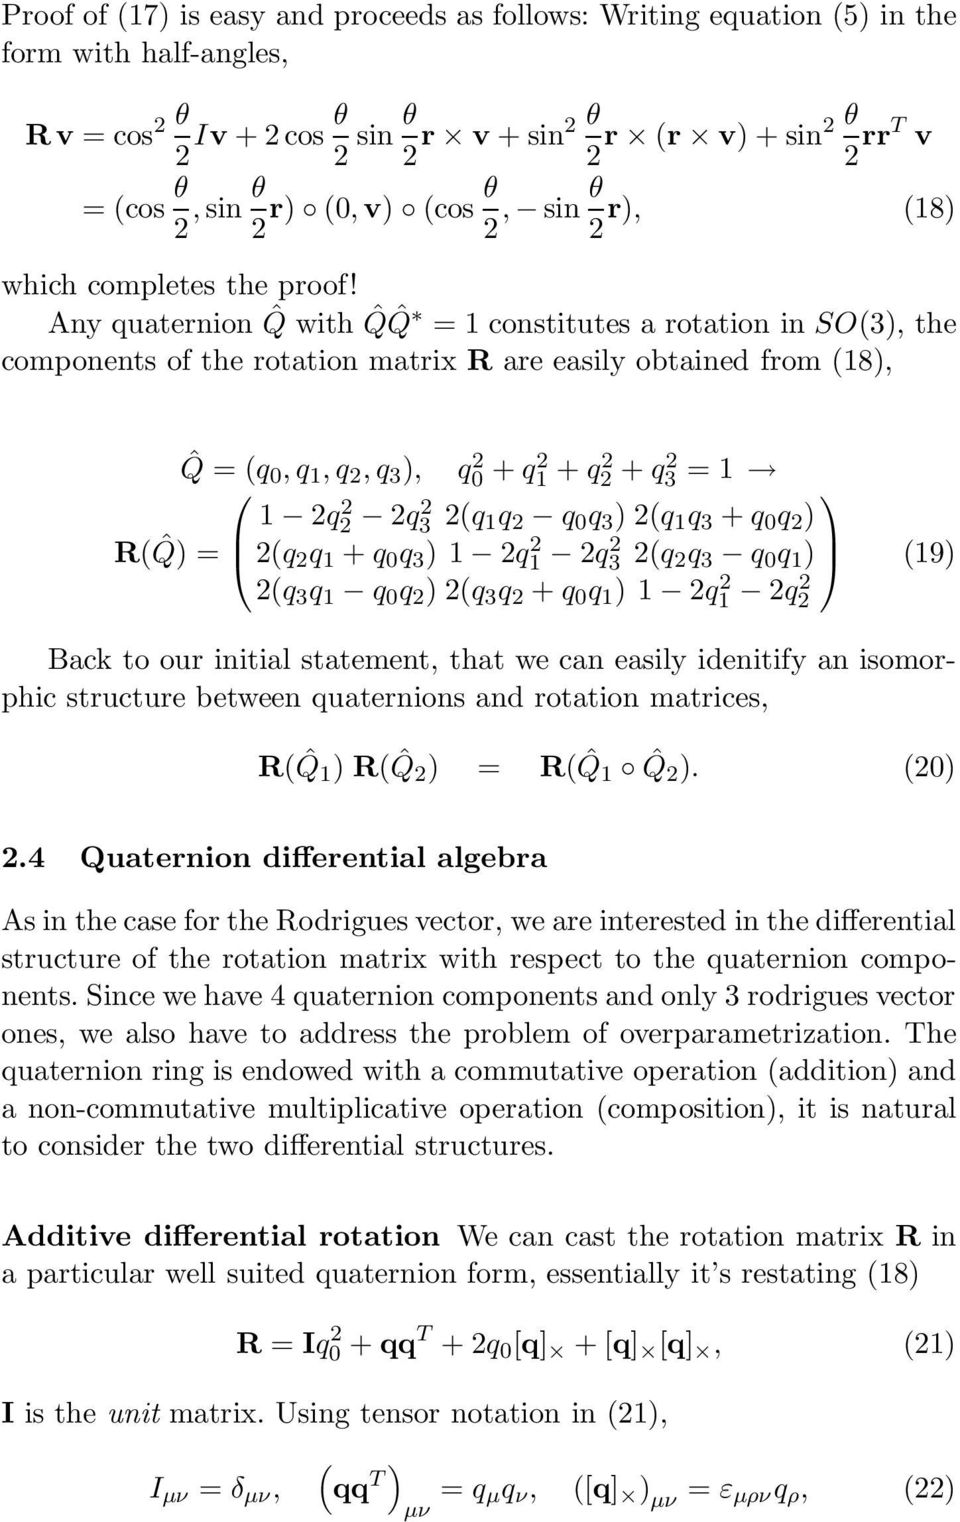 Any quaternion ˆQ with ˆQ ˆQ = 1 constitutes a rotation in SO(3), the components of the rotation matrix R are easily obtained from (18), ˆQ = (q,q 1,q,q 3 ), q + q 1 + q + q 3 = 1 R( ˆQ) 1 q q 3 (q